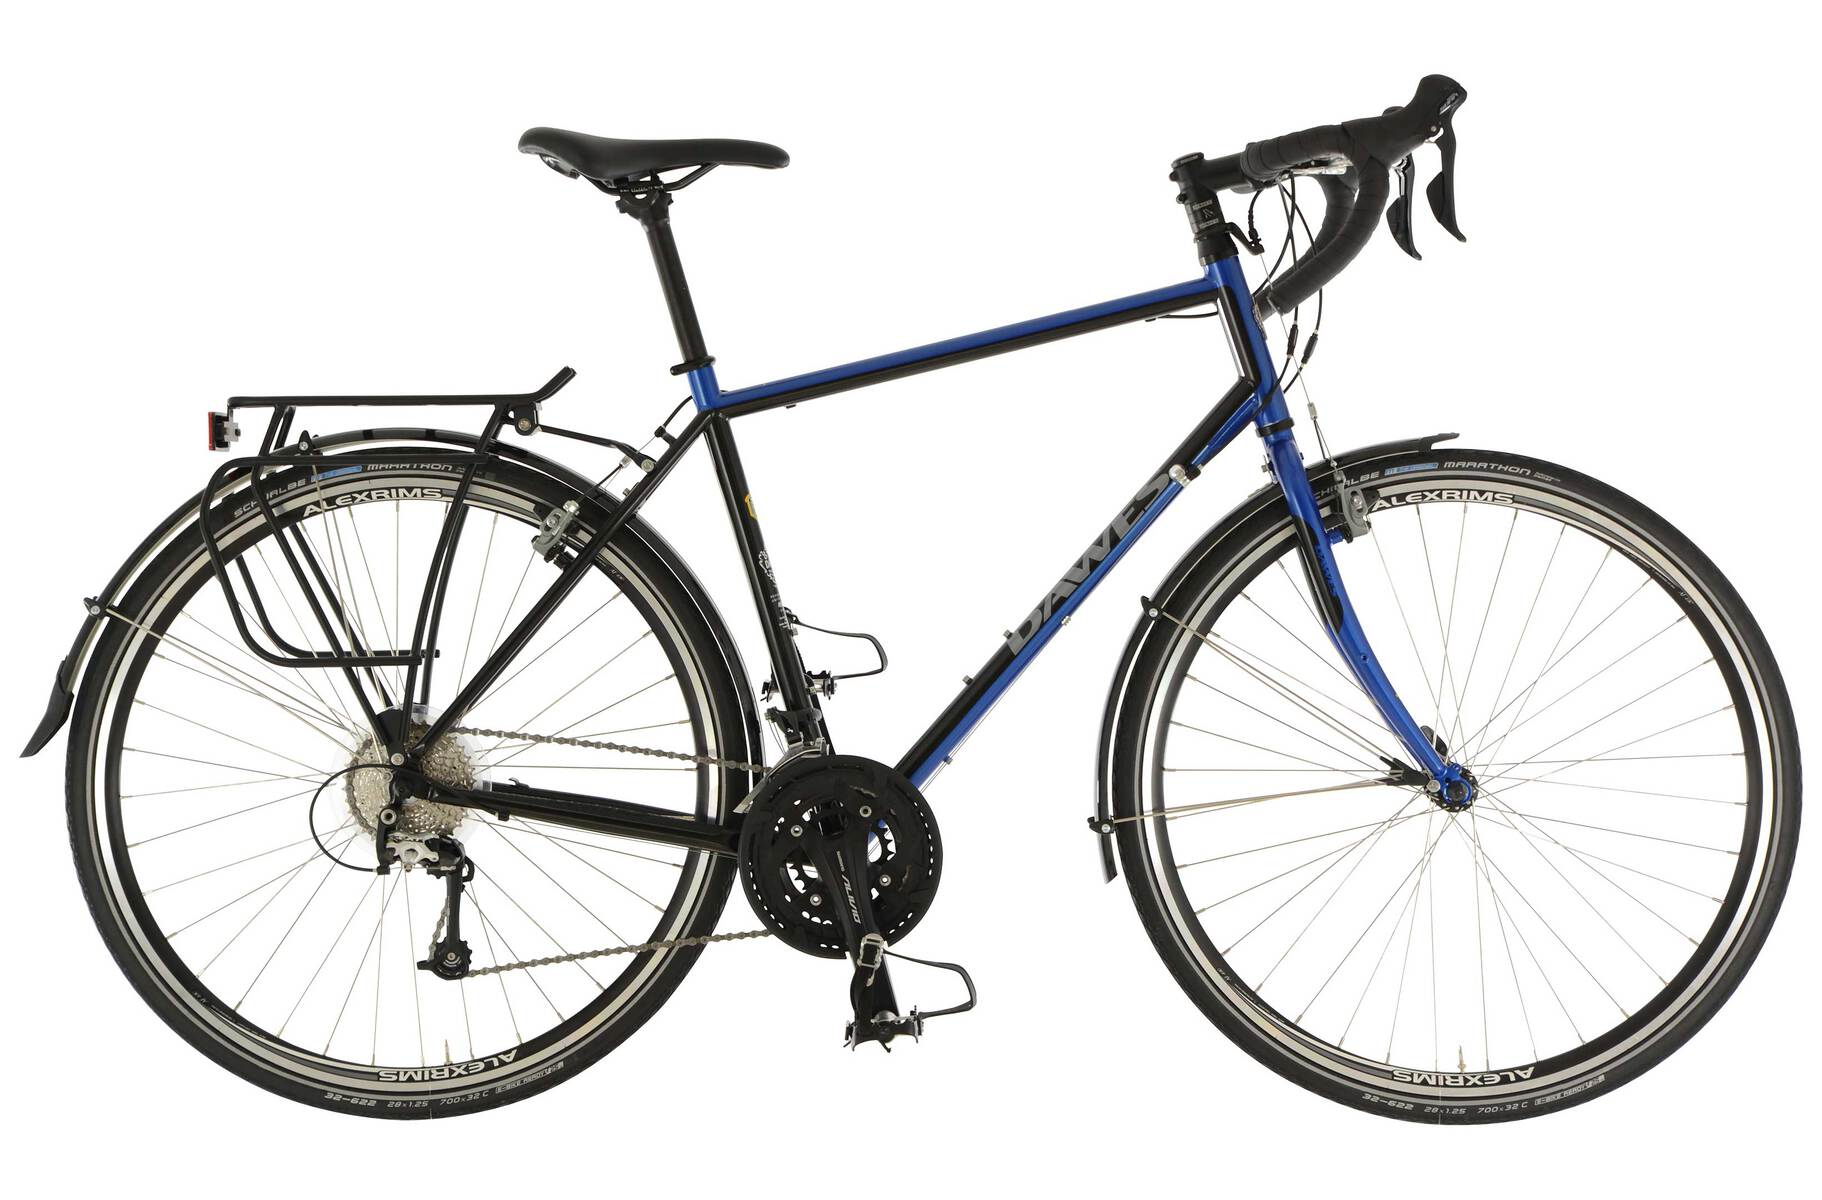 Touring Bikes: 20 of the Best Travel Bicycles under 2000